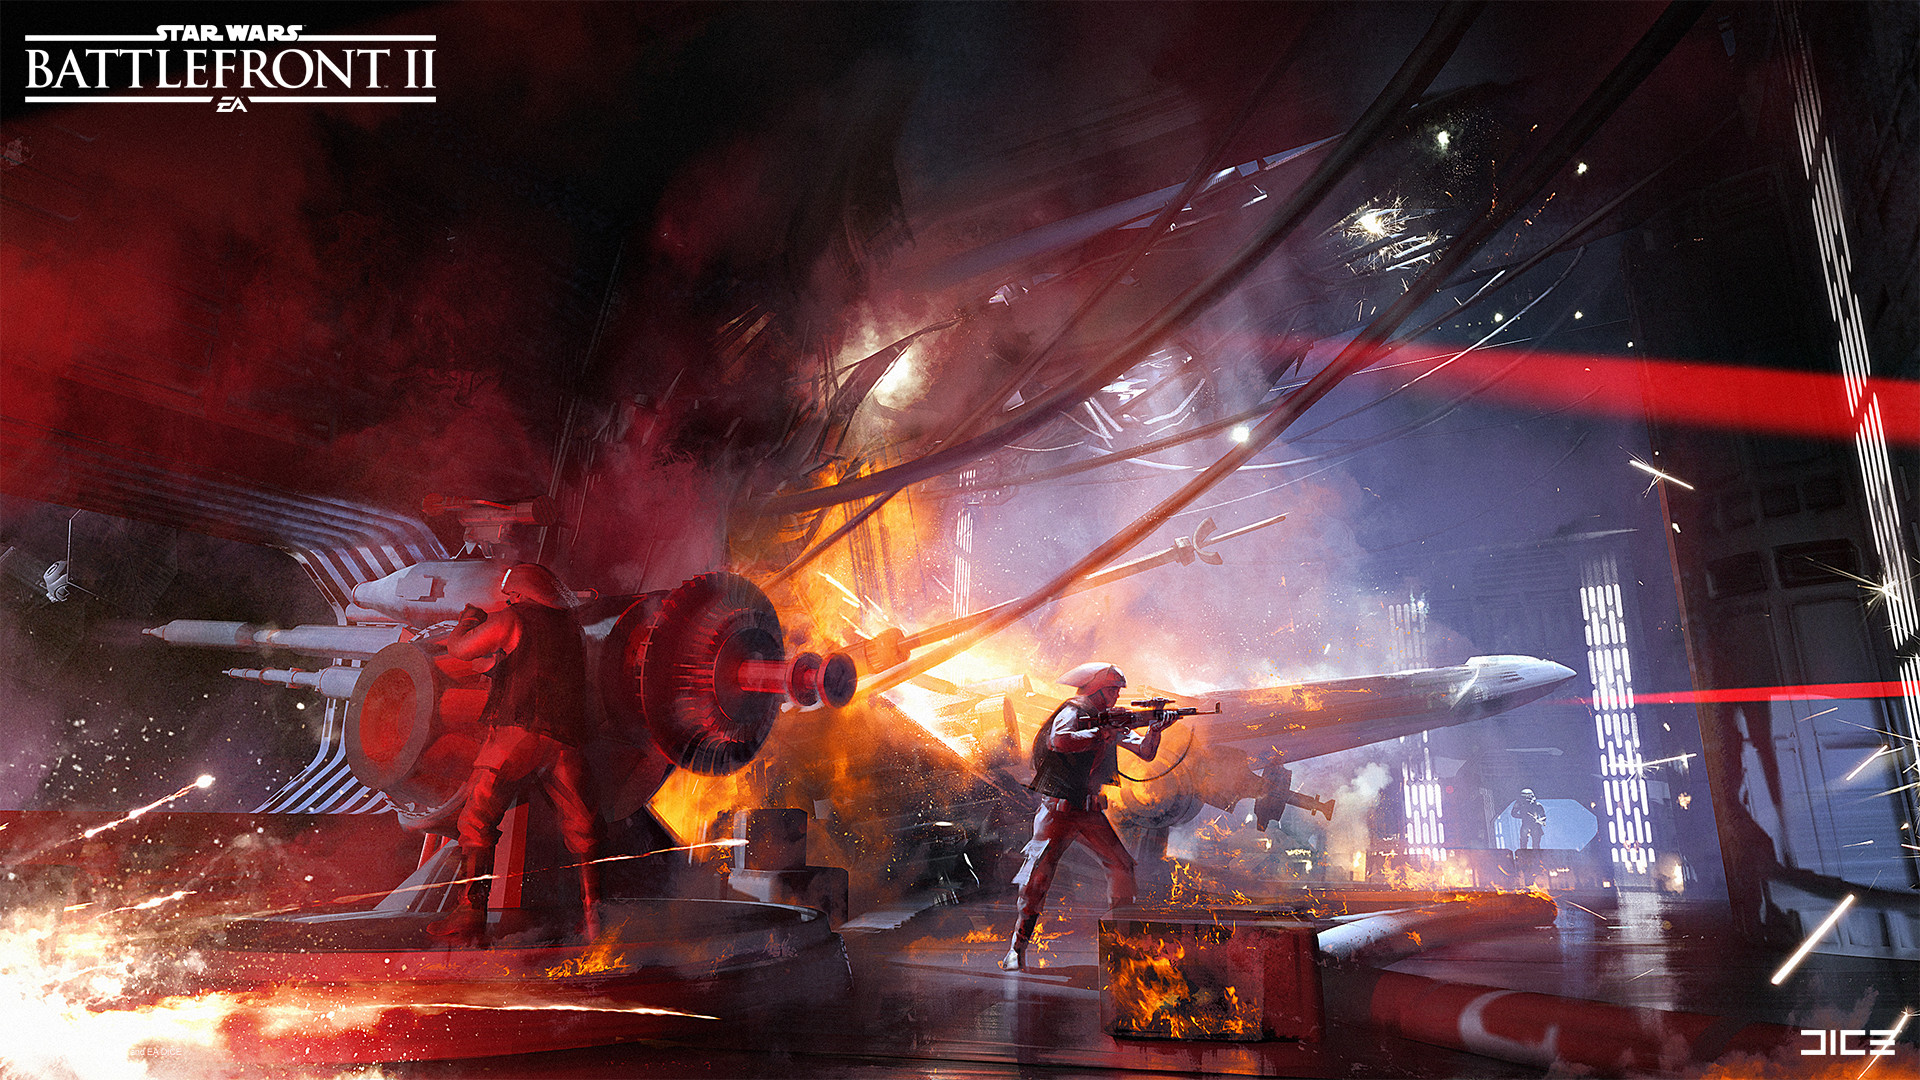 Star Wars Battlefront 2 Art by Anton Grandert